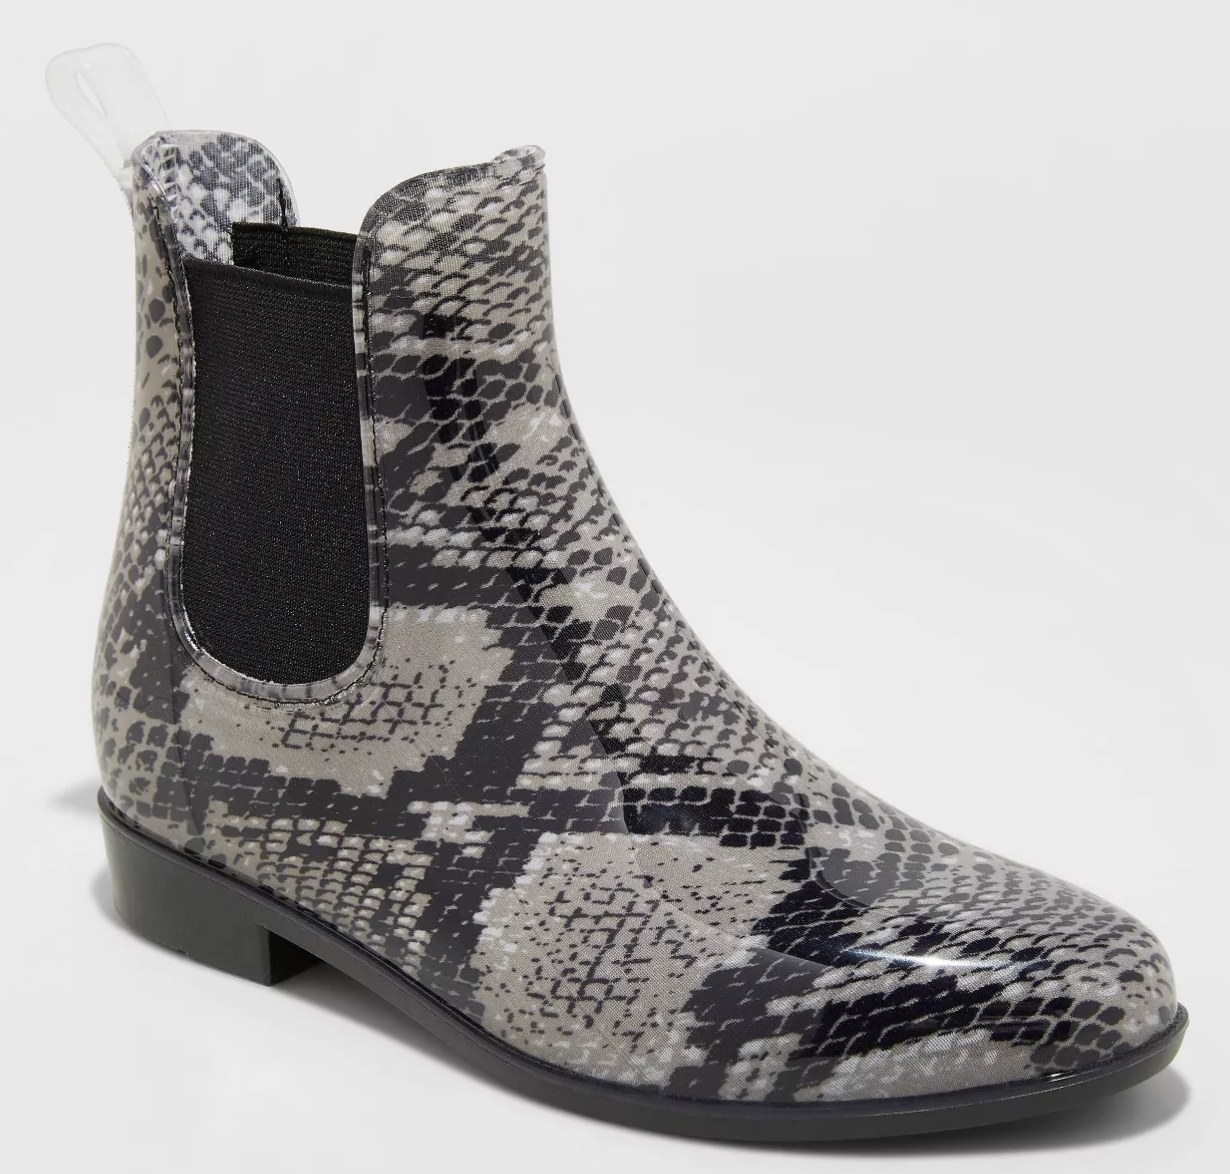 The shoe in gray